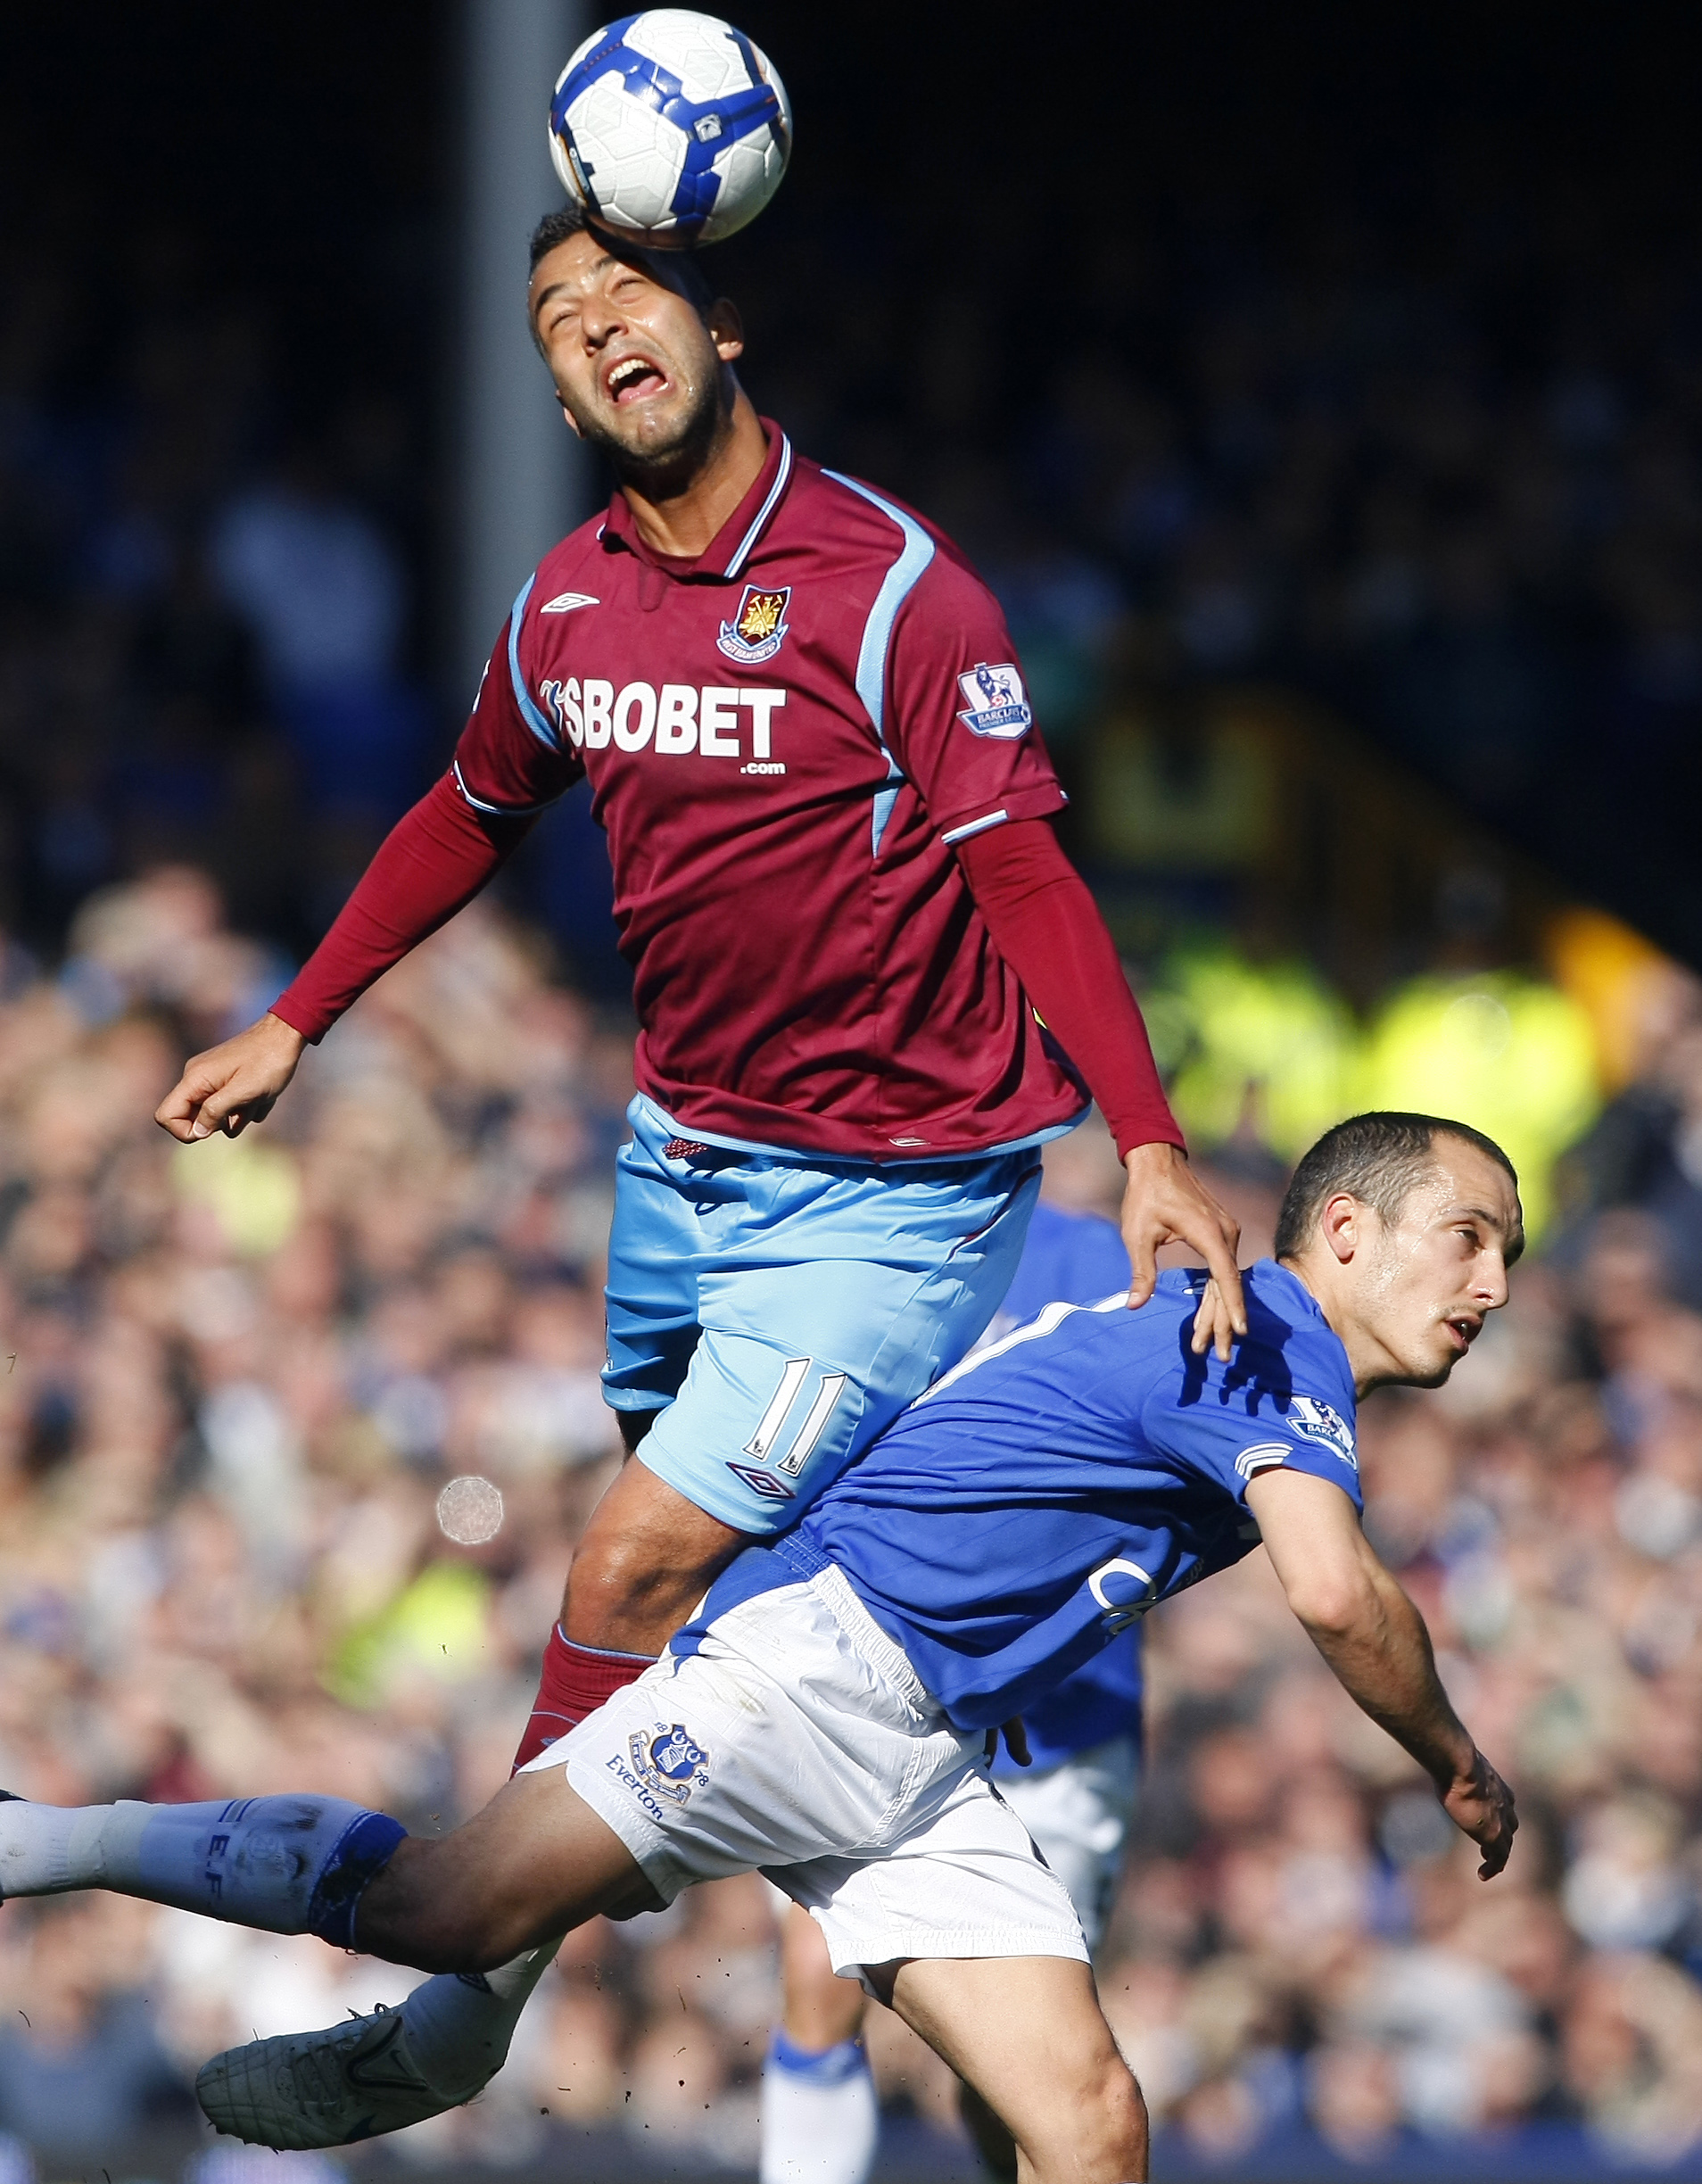 Everton's Tim Cahill, top, vies for the ball against West Ham's Carlton Cole during their English Premier League soccer match at Goodison Park, Liverp...